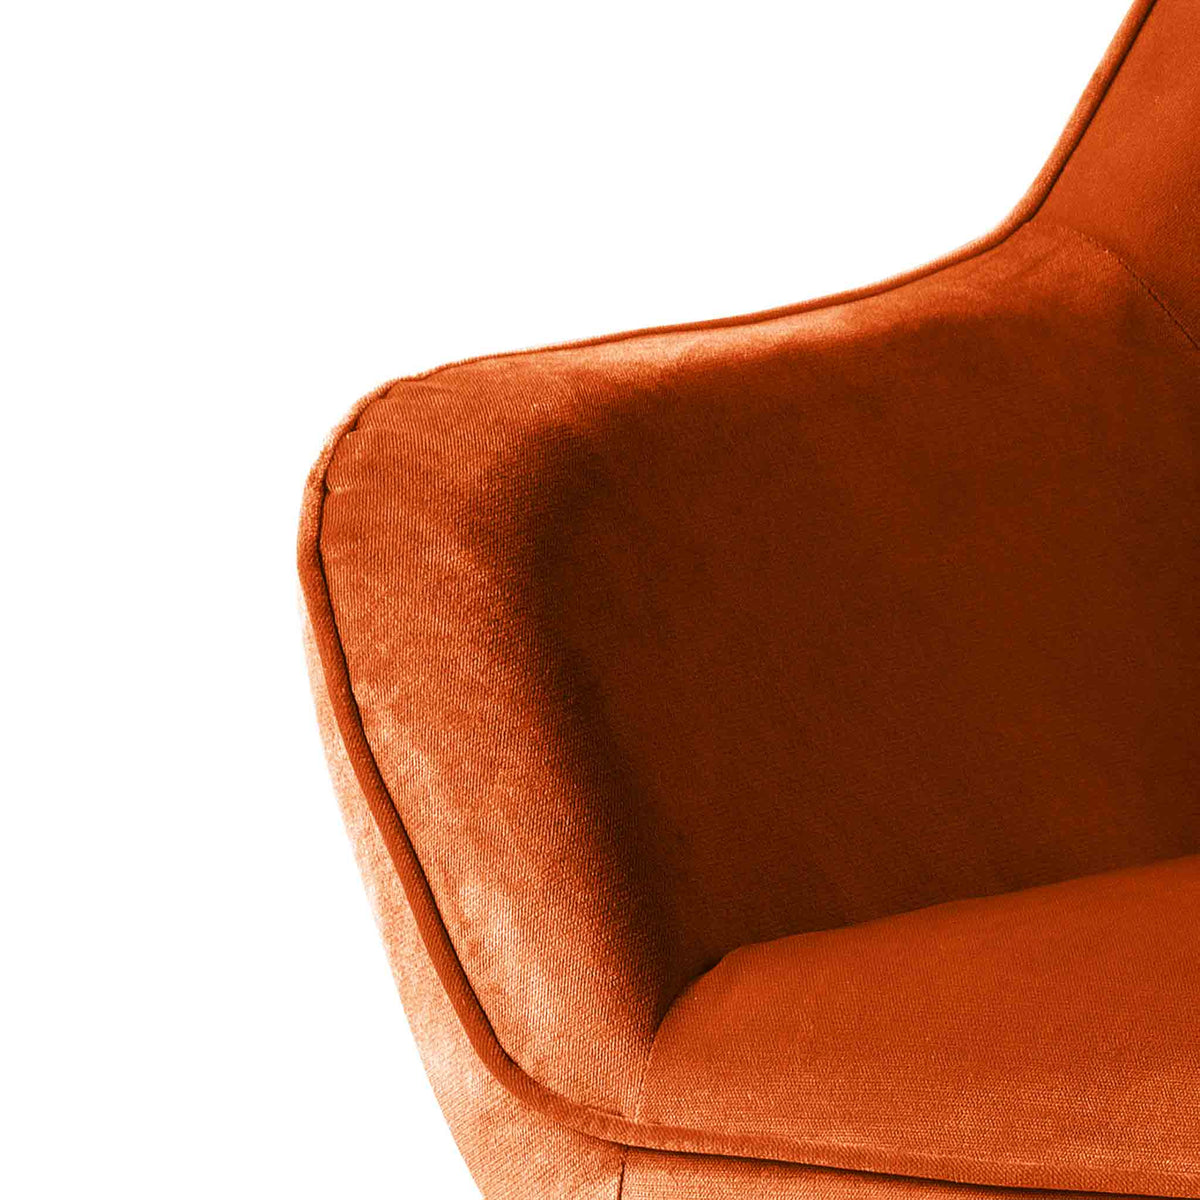 close up of upholstered velvet fabric on the Candy Apricot Velvet Accent Chair